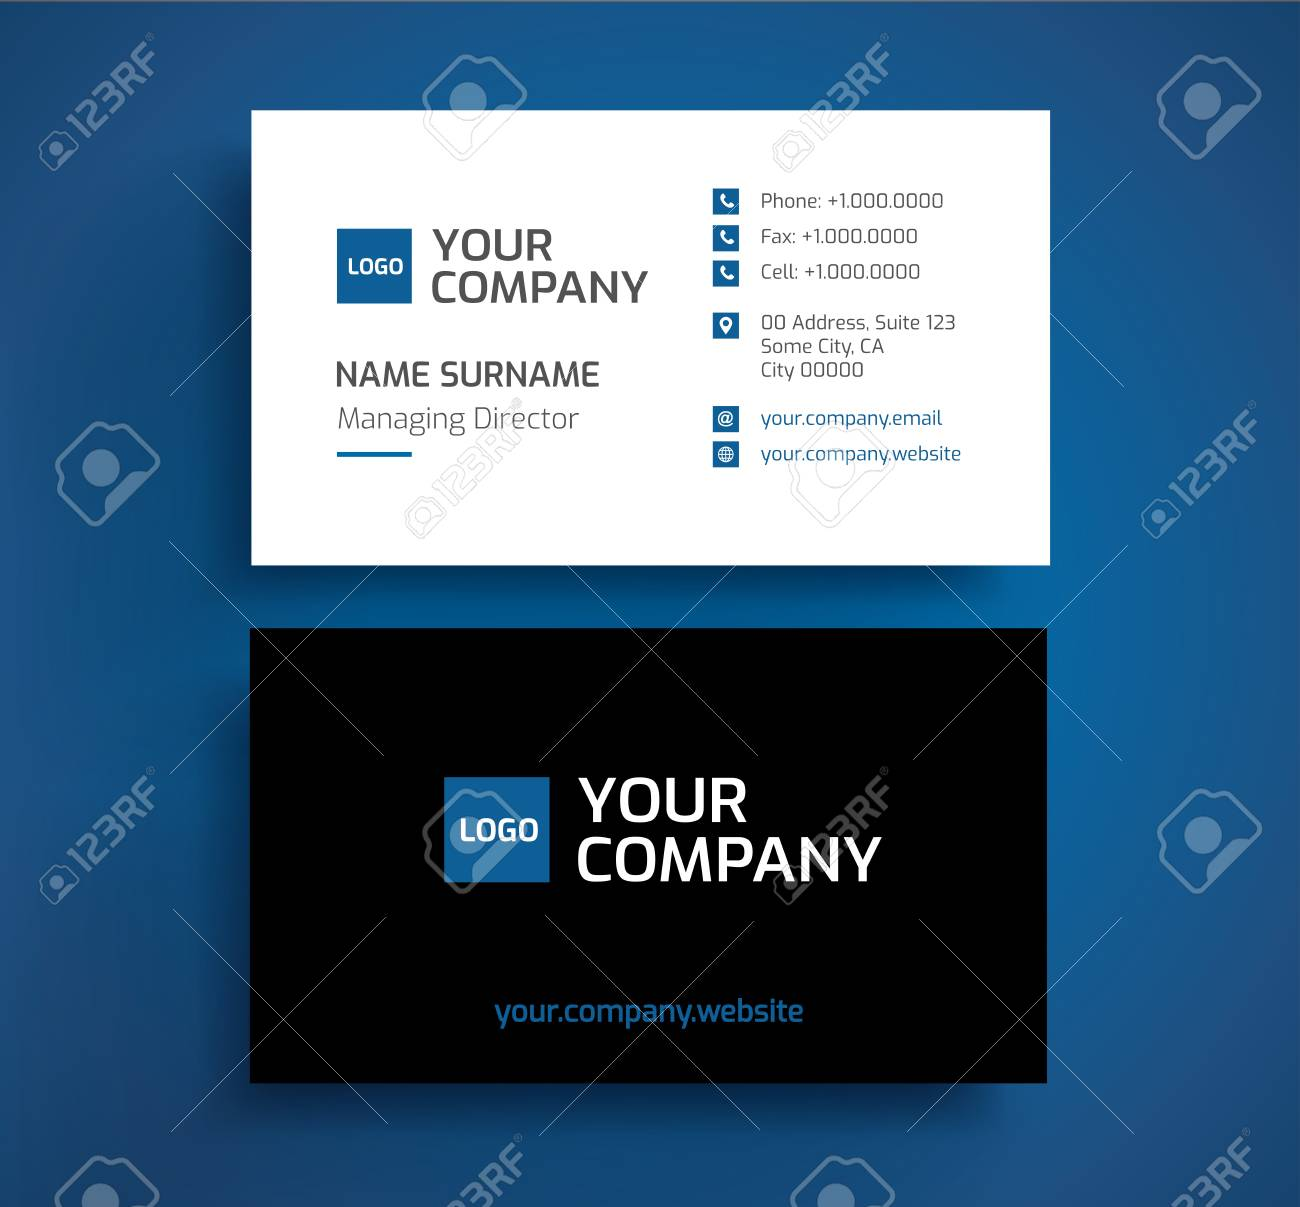 Stylish Business Card Template Vector Blue Black And White